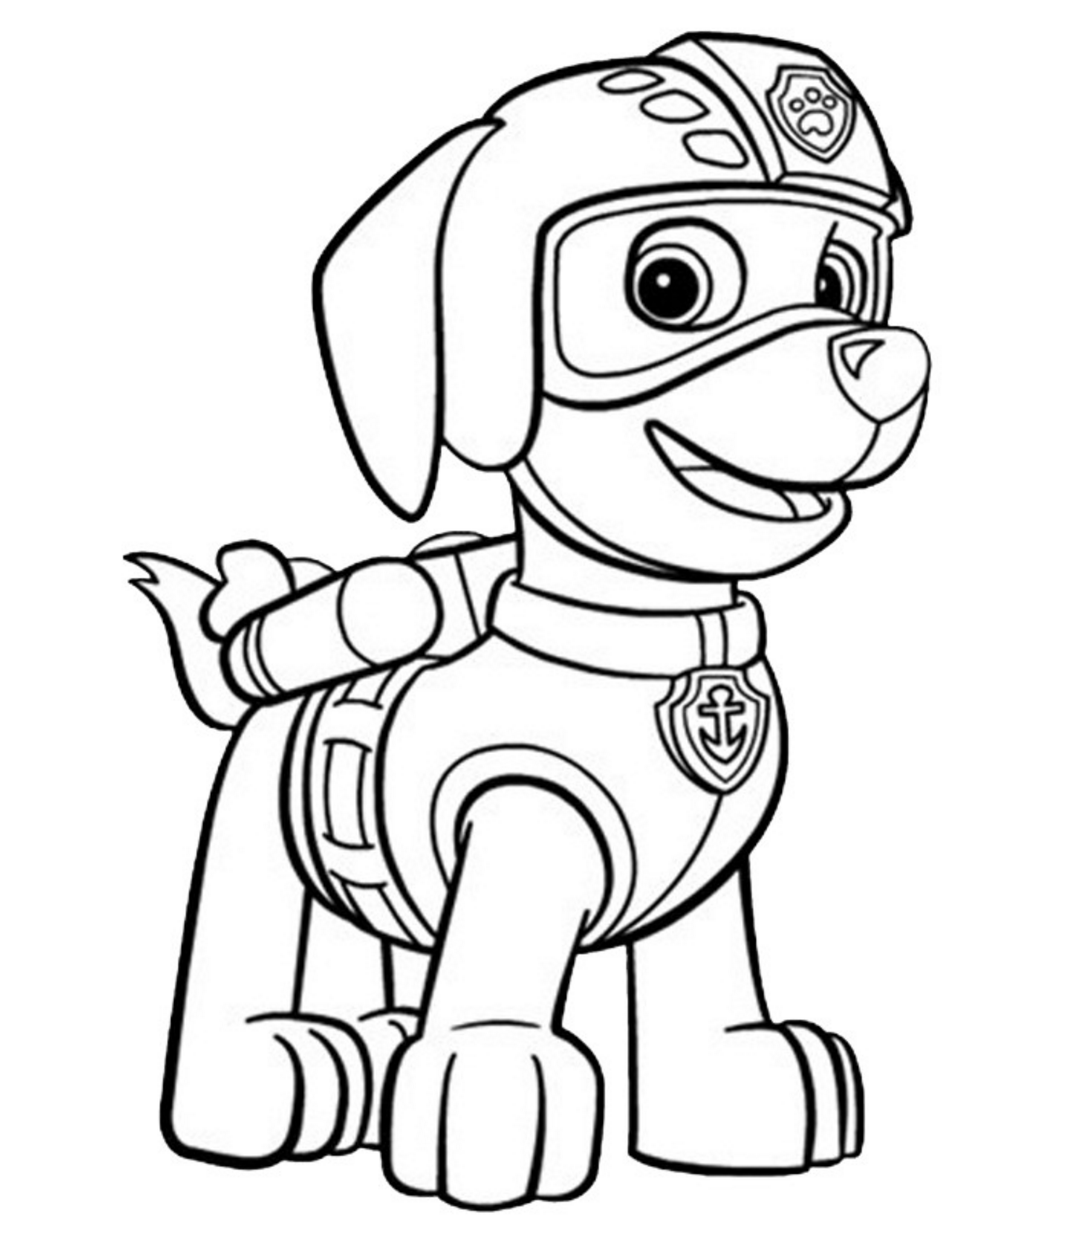 PAW Patrol Coloring Book Pages